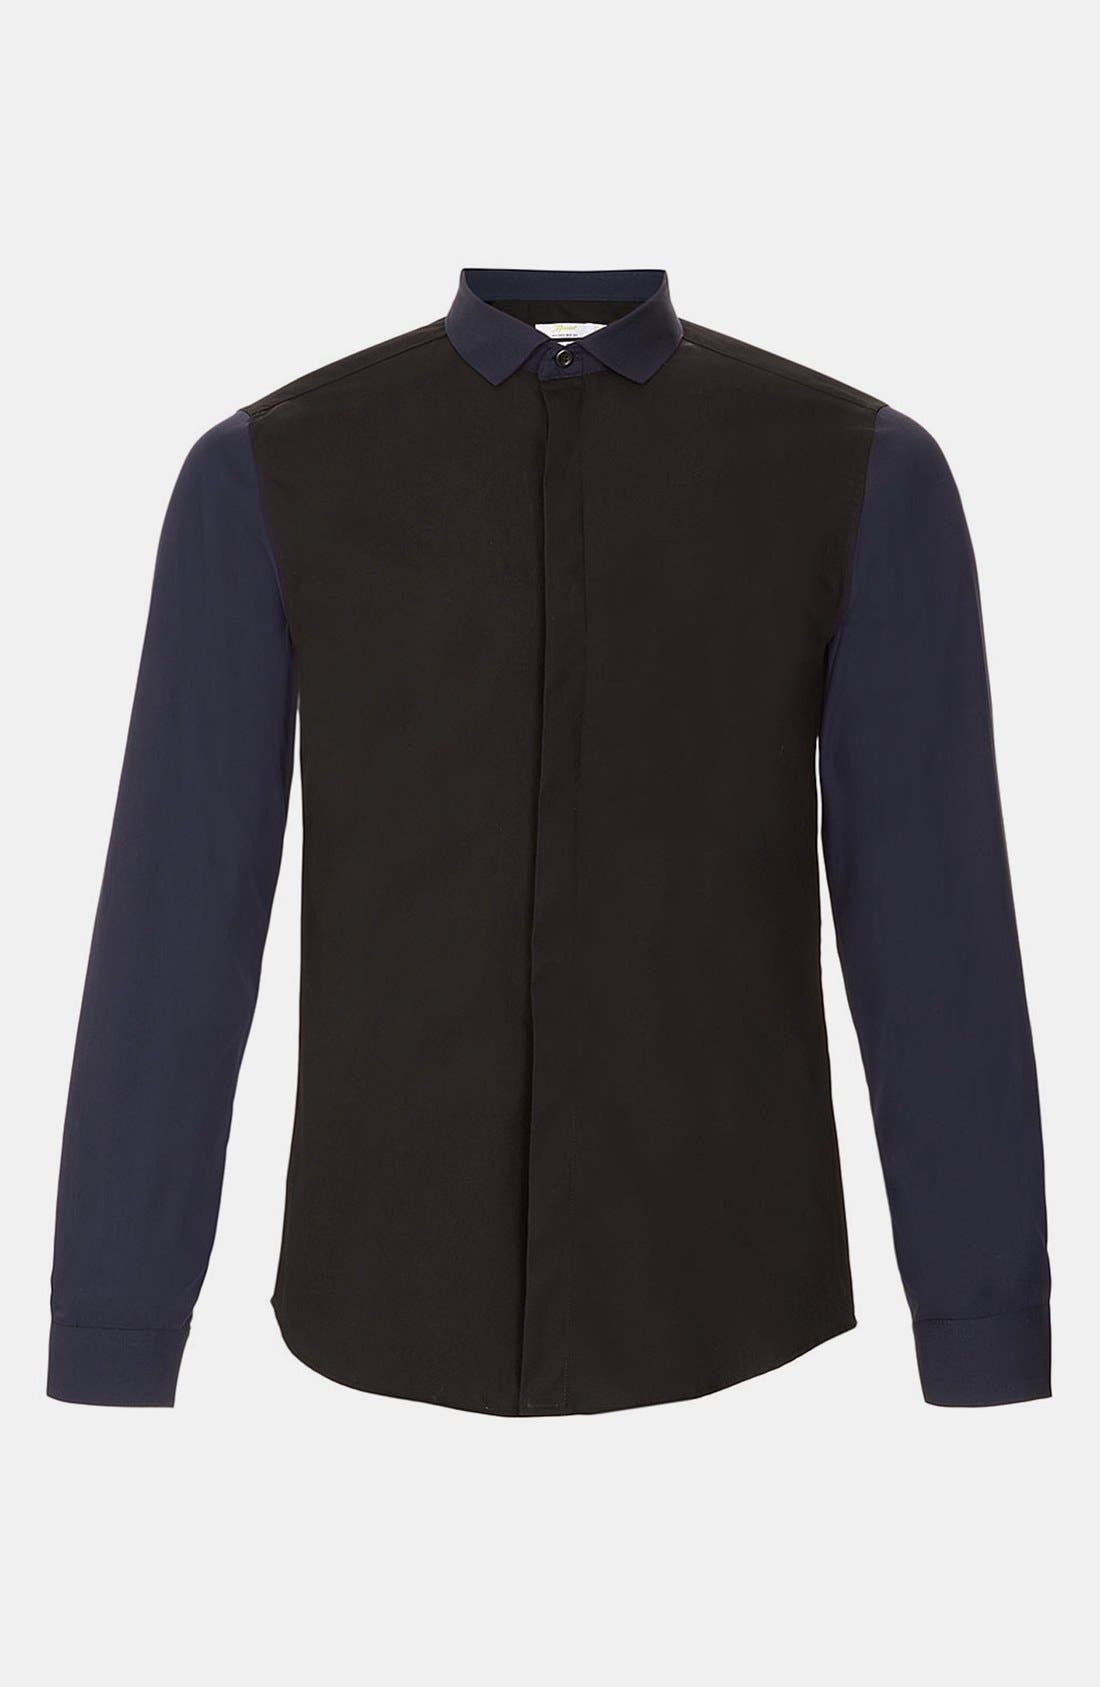 Alternate Image 1 Selected - Topman 'Smart' Extra Trim Contrast Dress Shirt